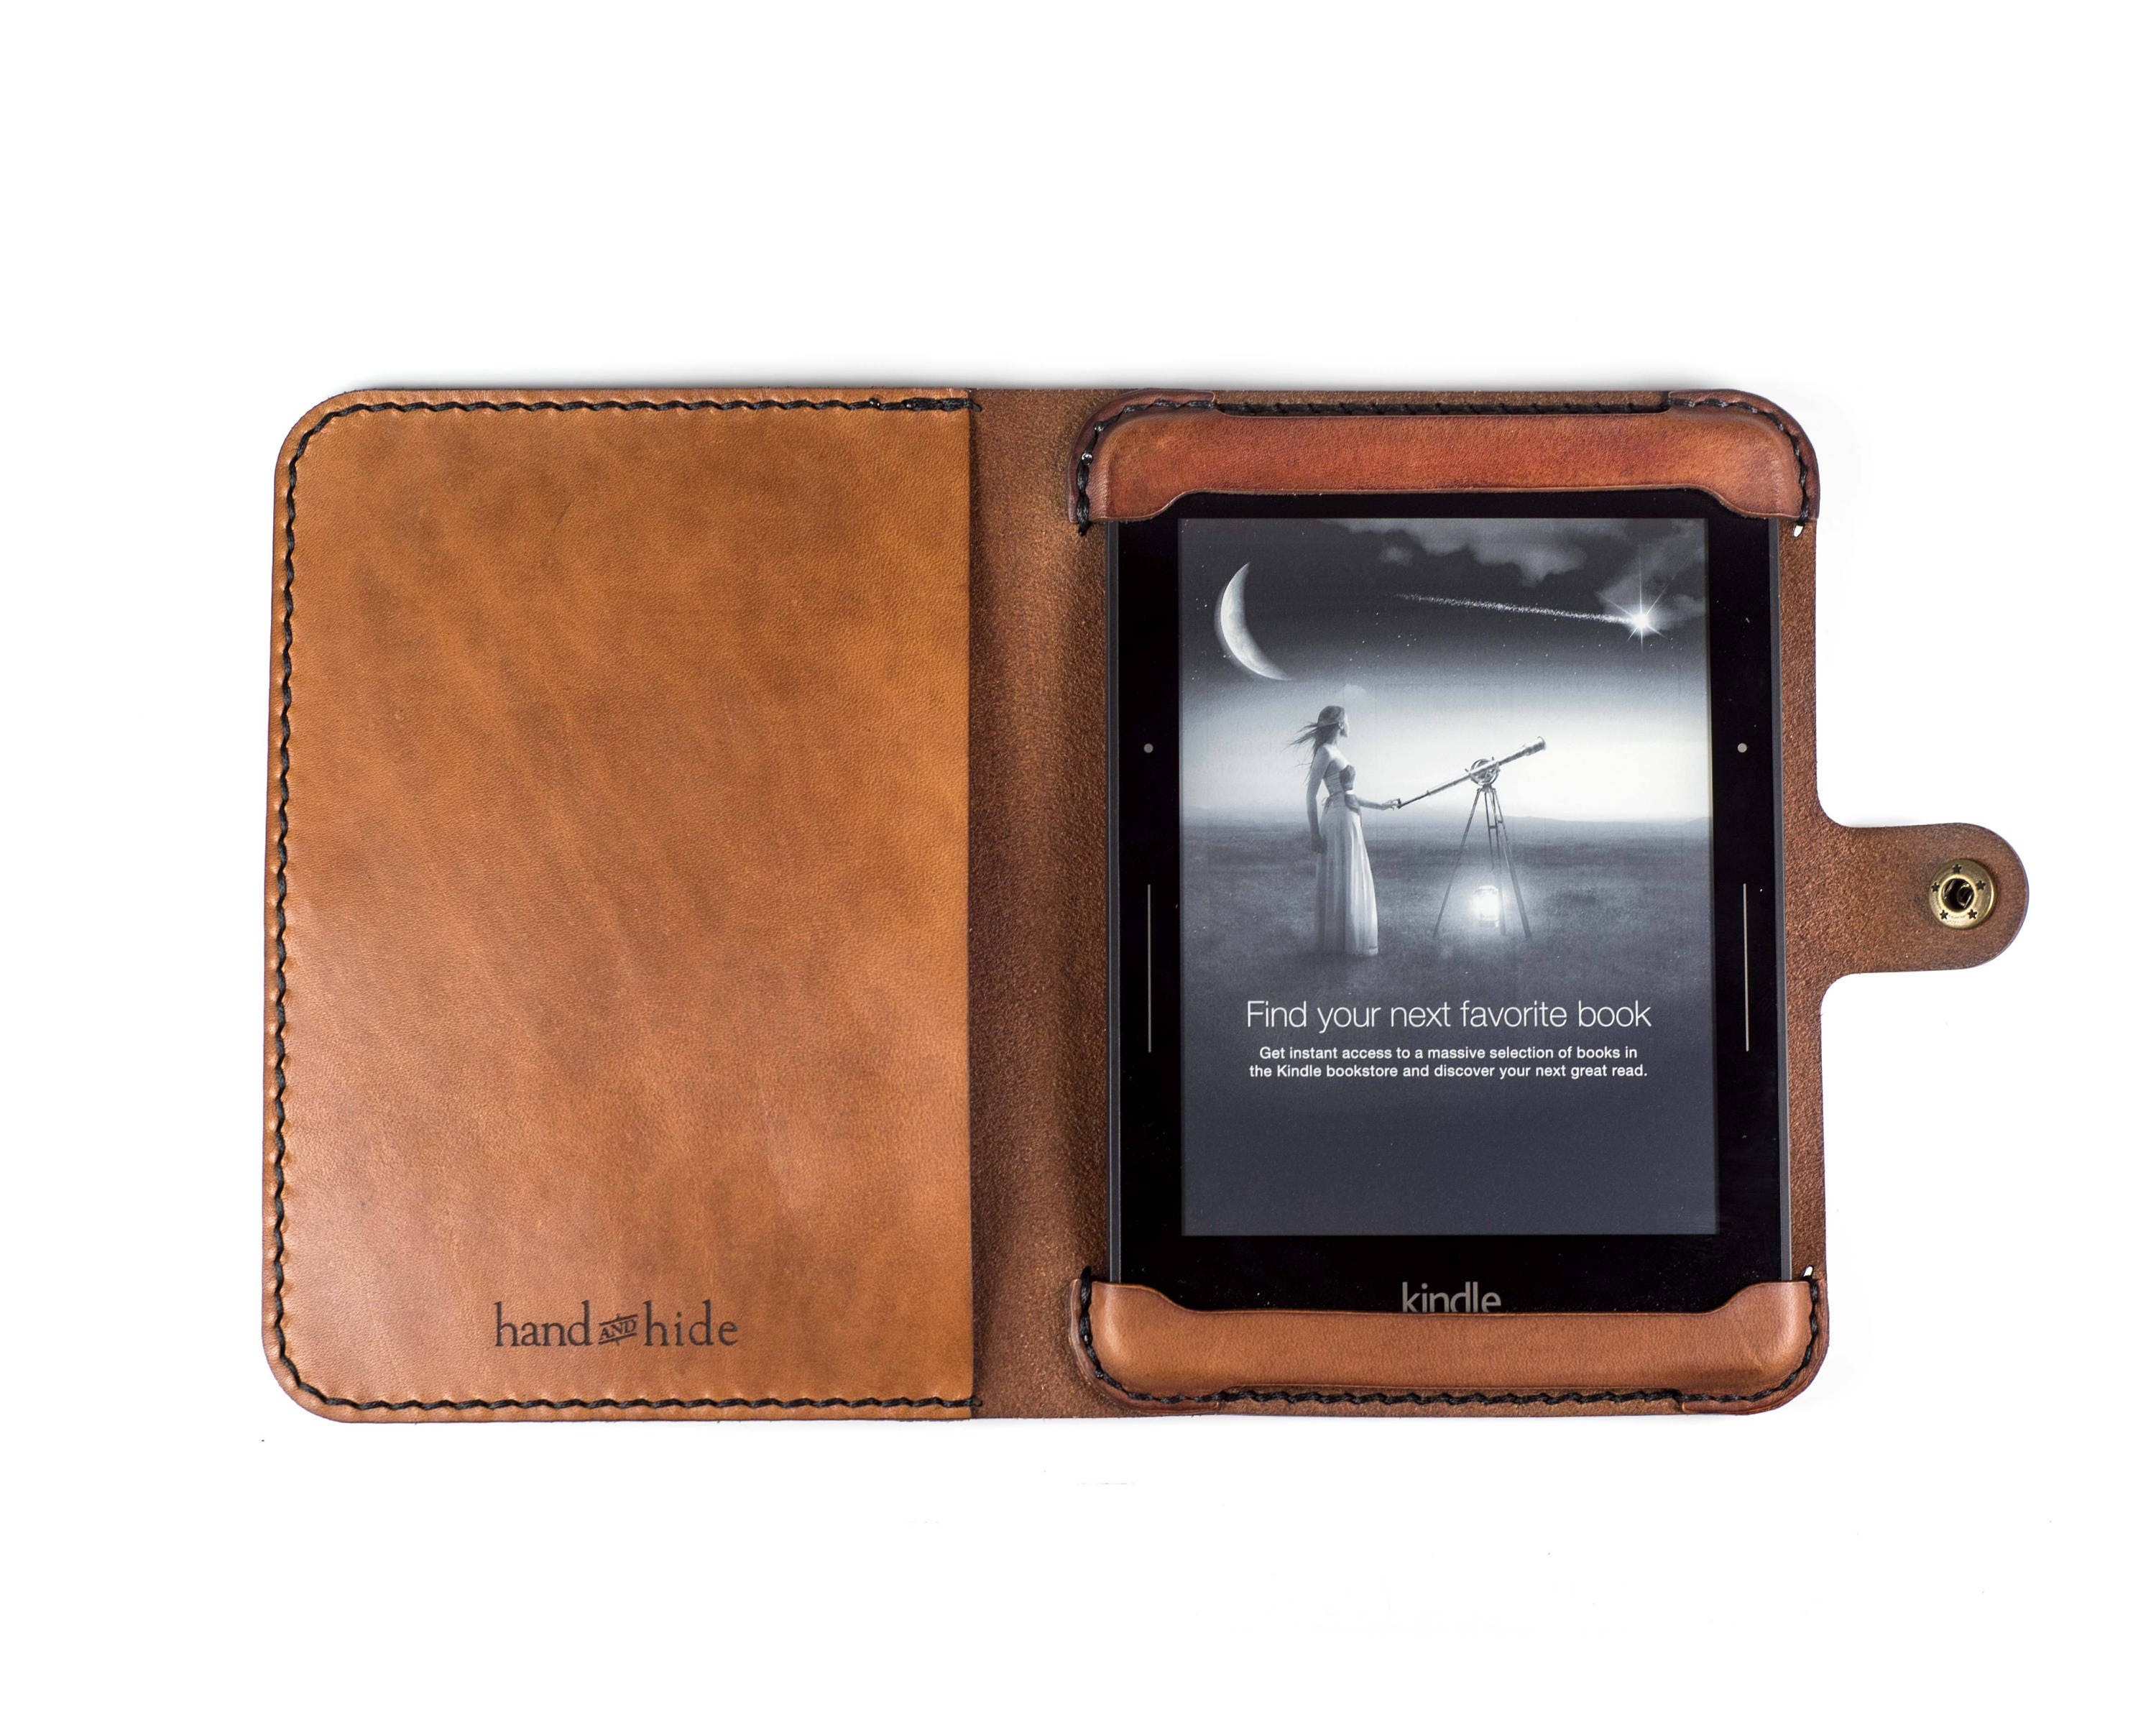 Kindle 8th Generation Leather Case Kindle Cover